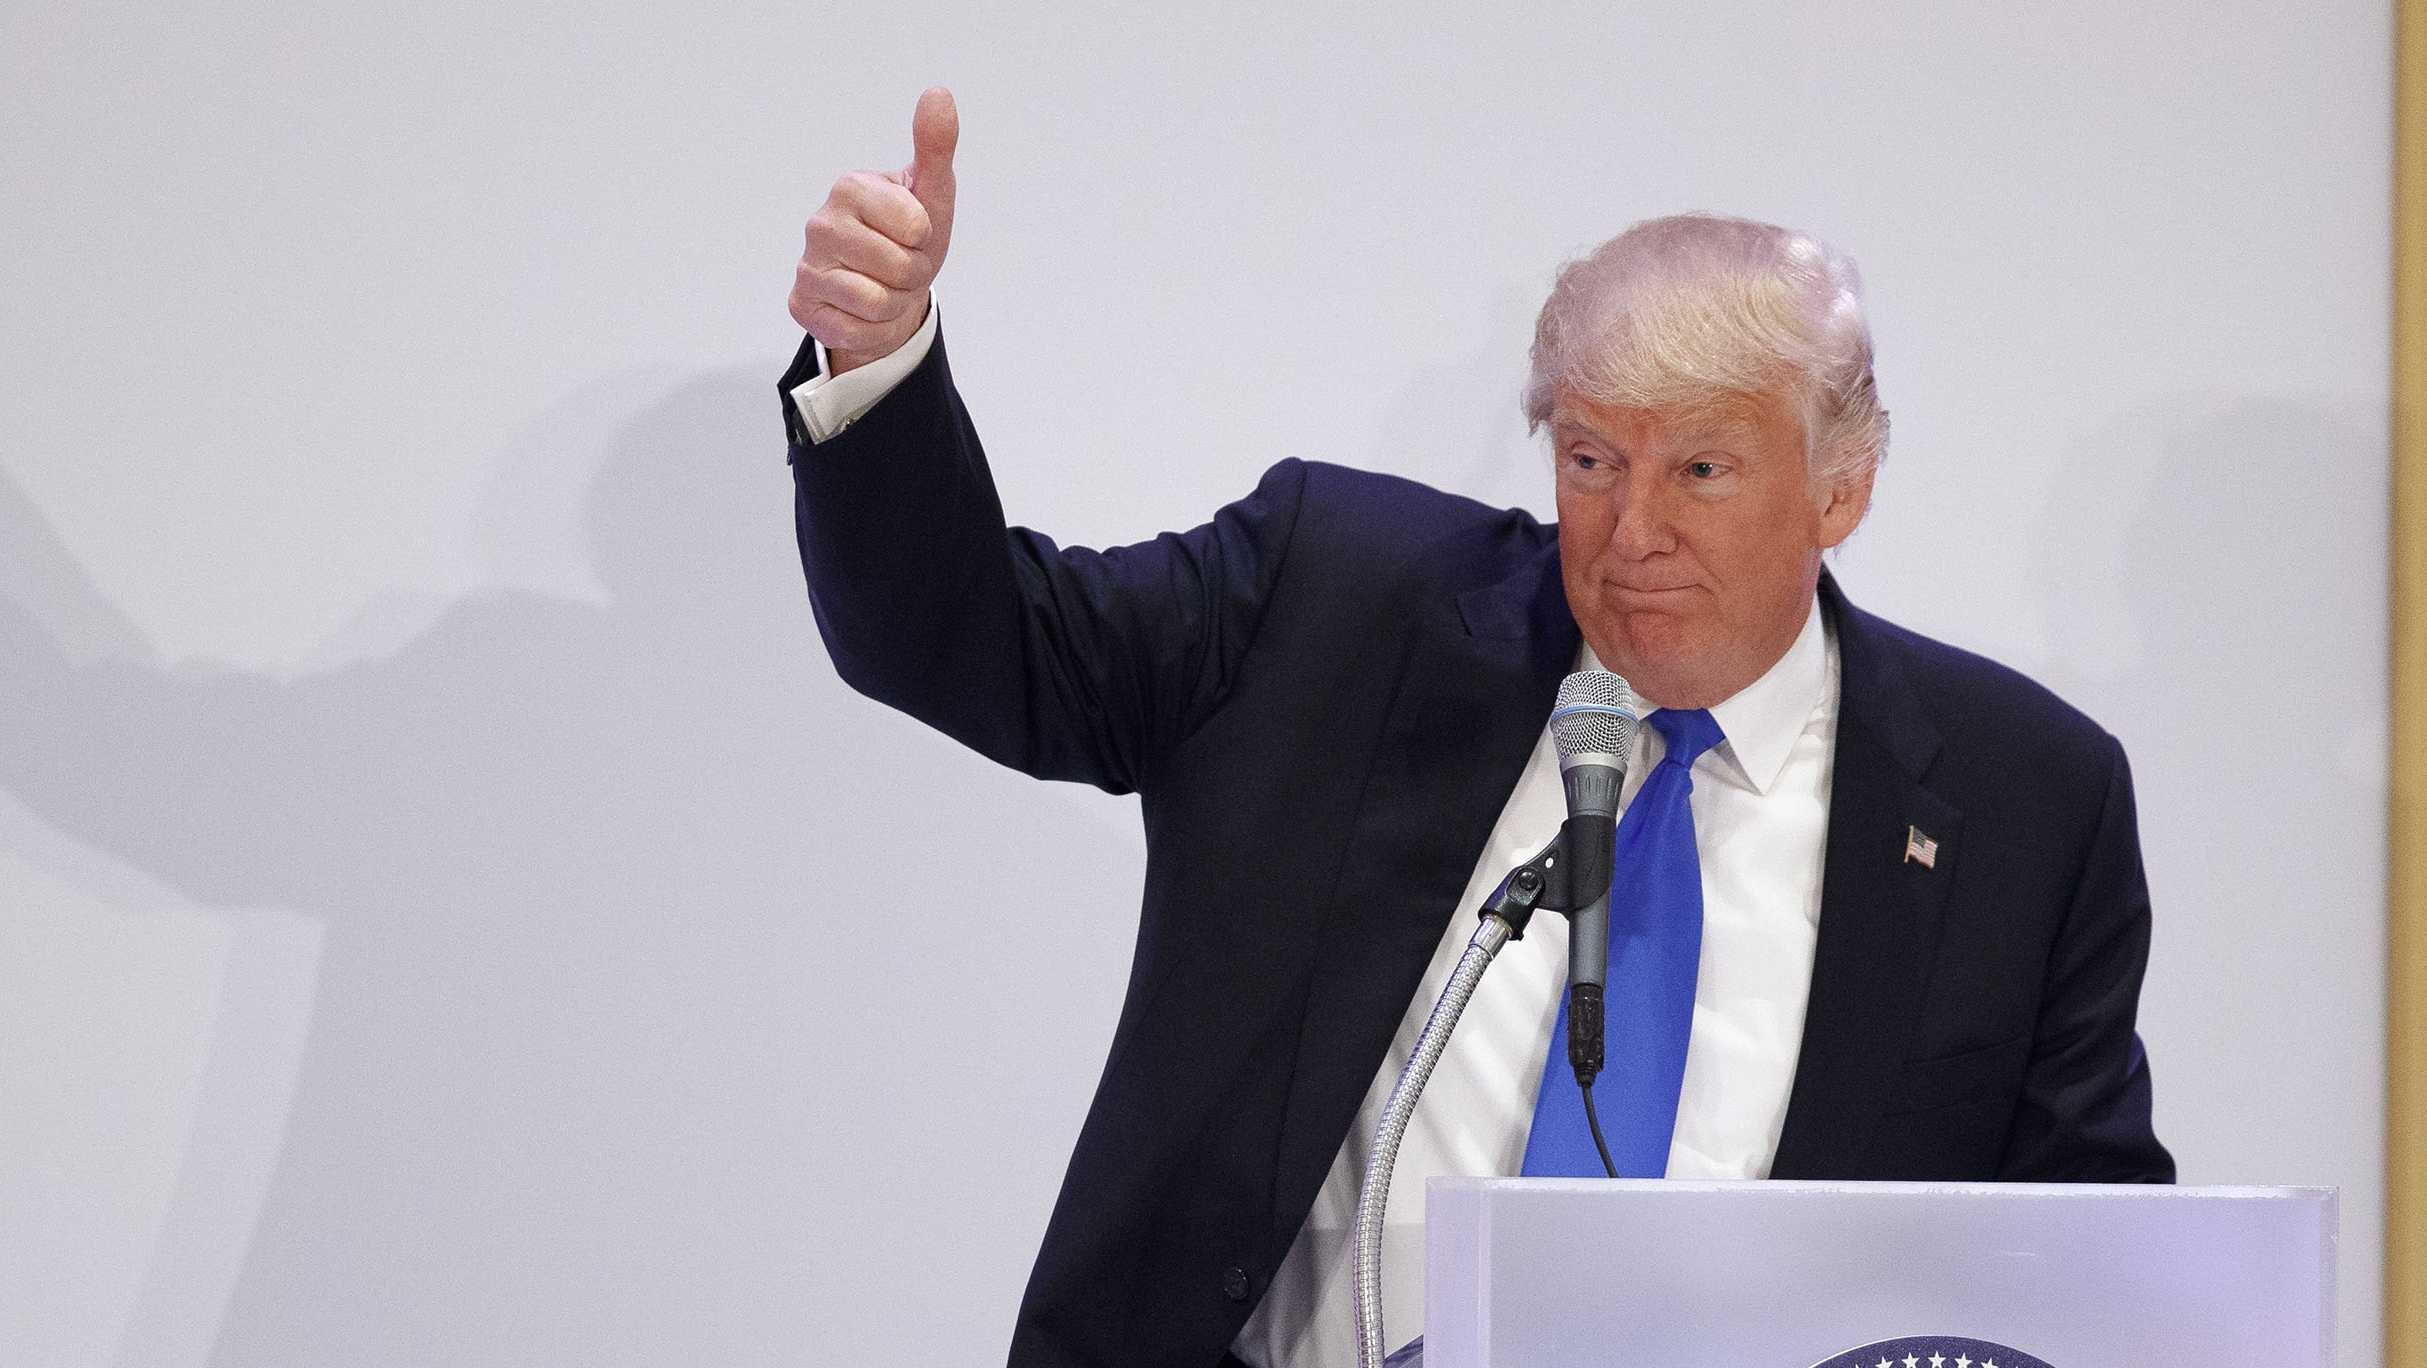 President Donald Trump gives a thumbs-up as he speaks during the Leadership Luncheon at Trump International in Washington.